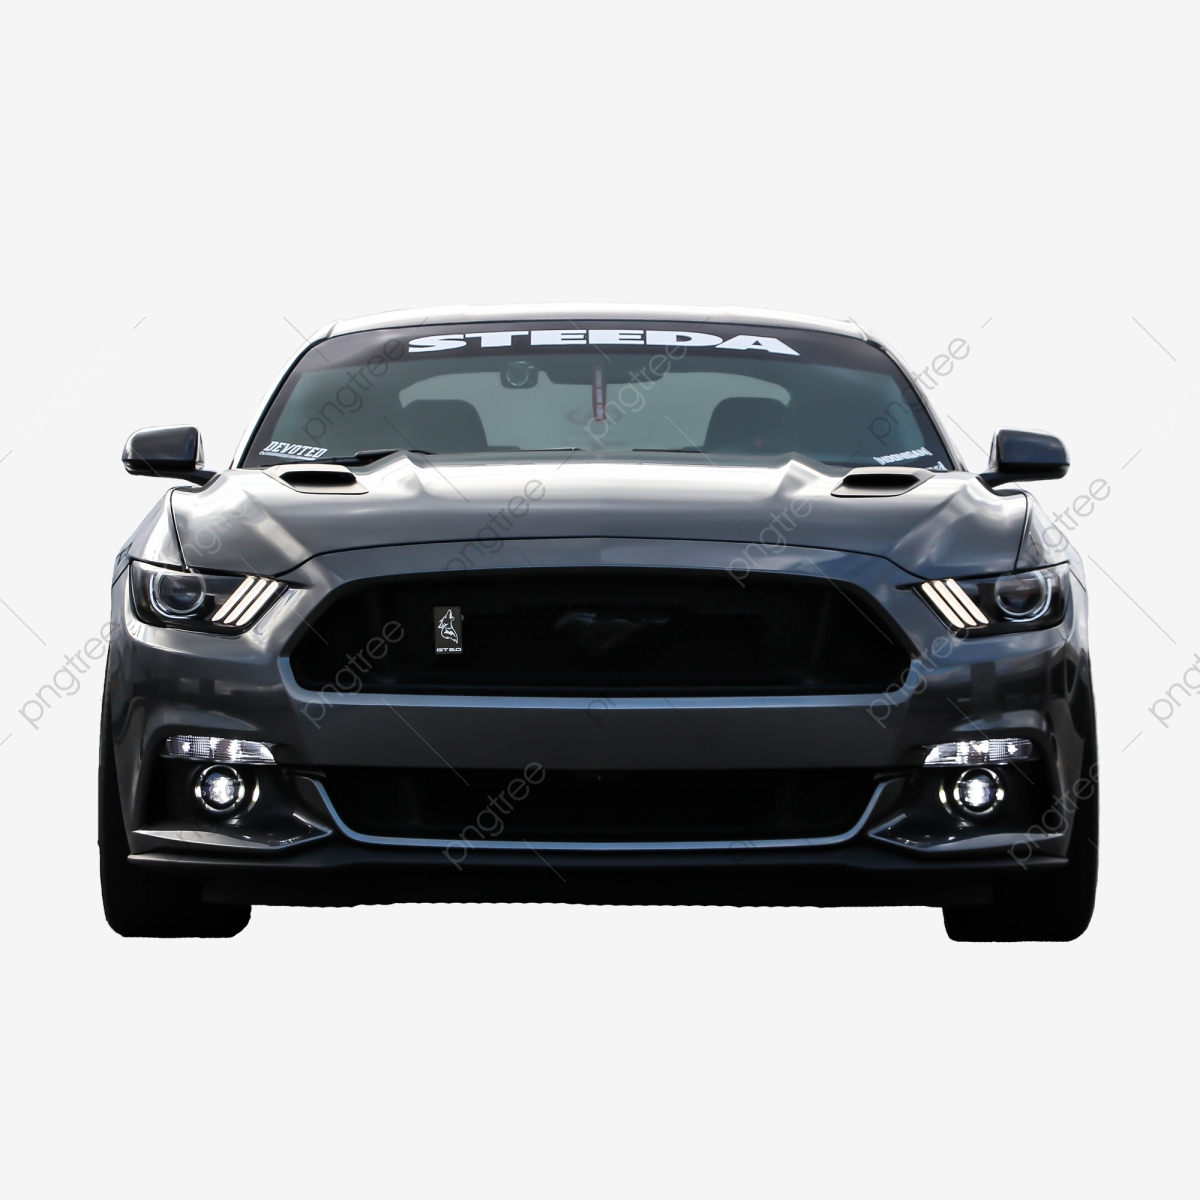 Black Ford Mustang Png Car Transportation Png Png Transparent Clipart Image And Psd File For Free Download